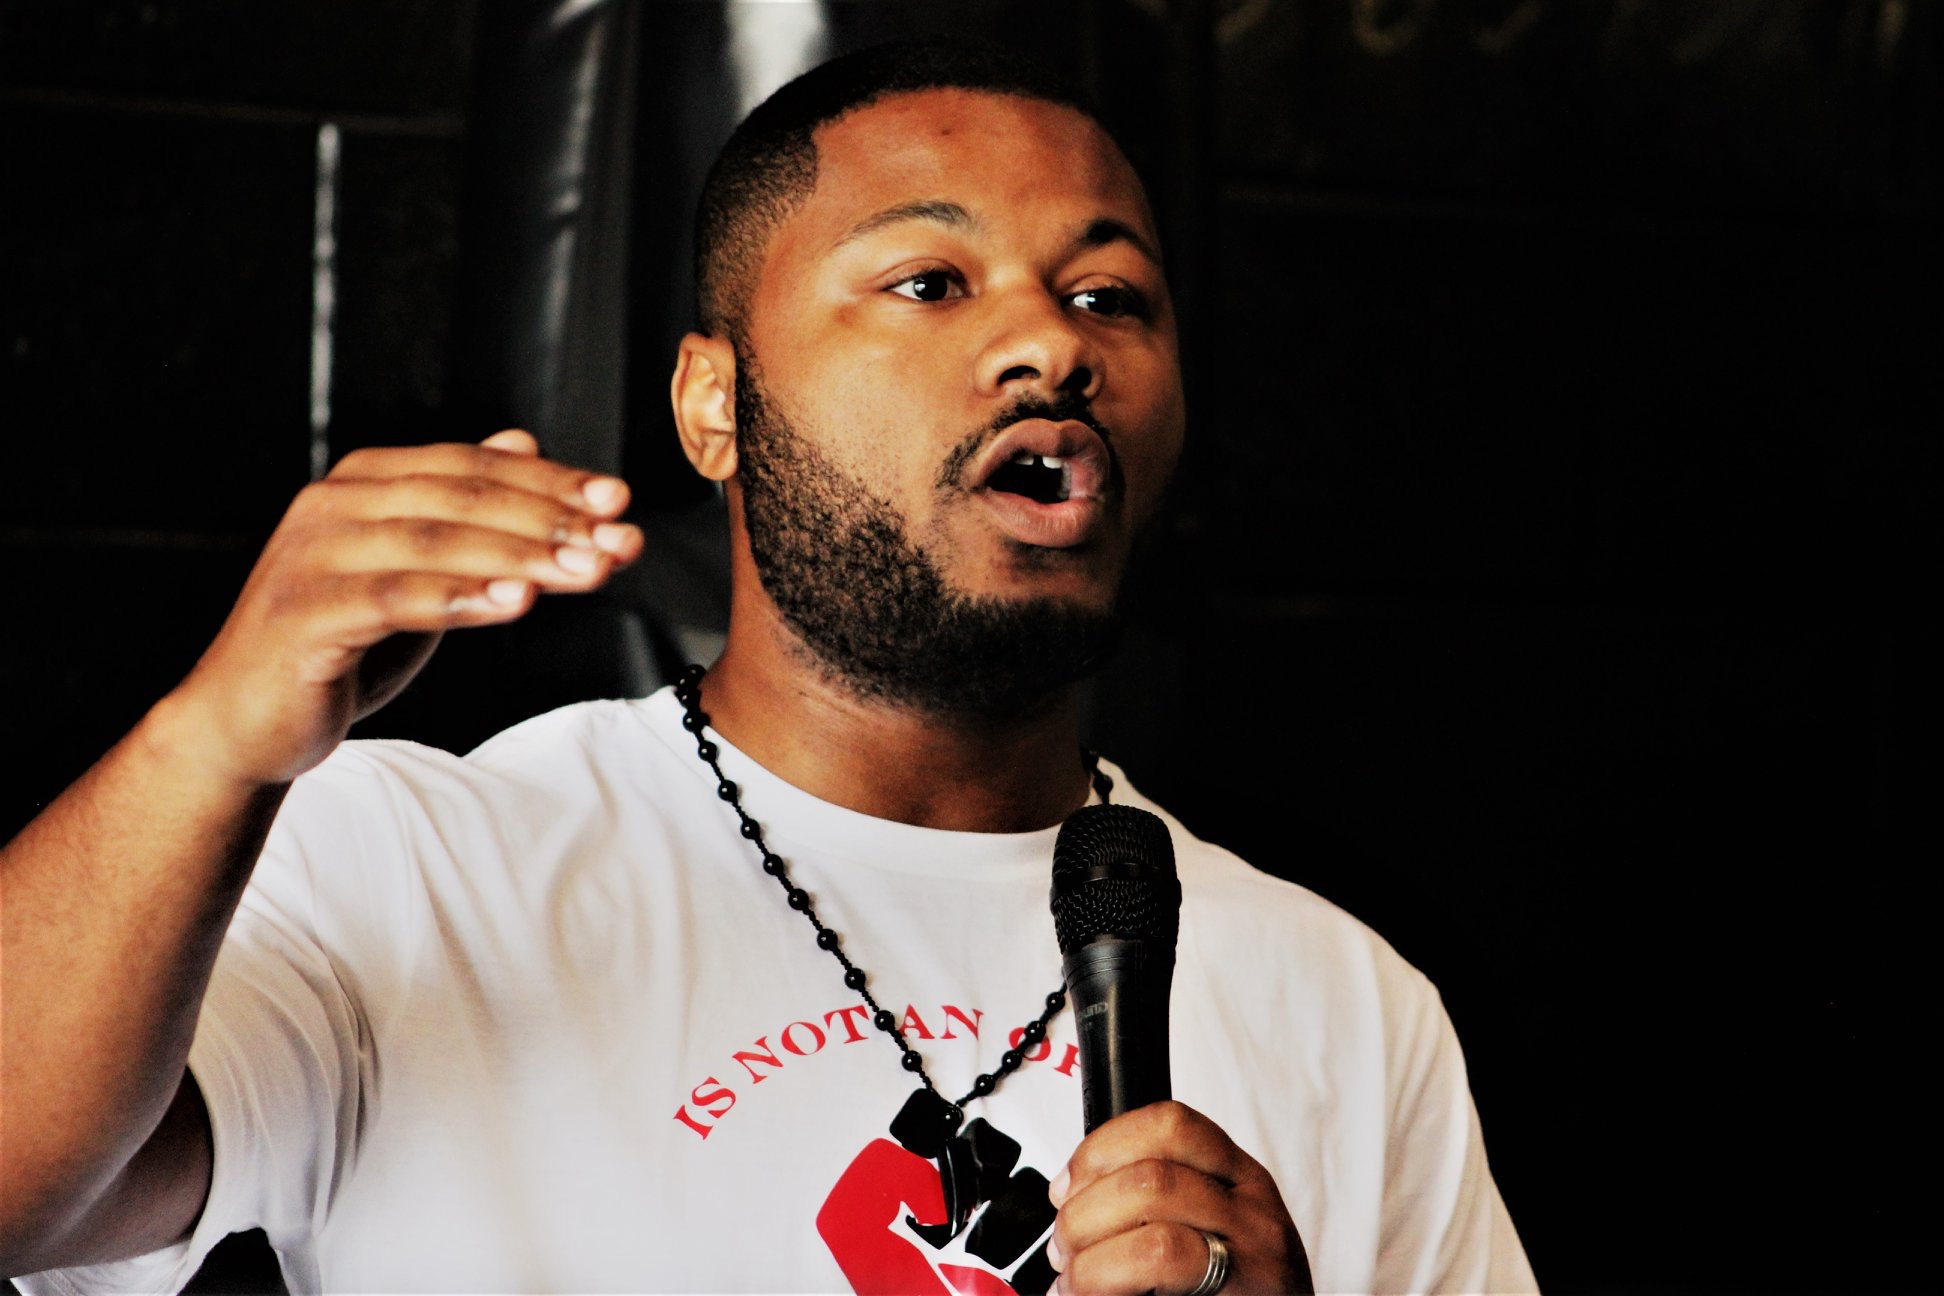 How Anthony Hyland Breaks the Status Quo With Spoken Word Poetry and Public Speaking